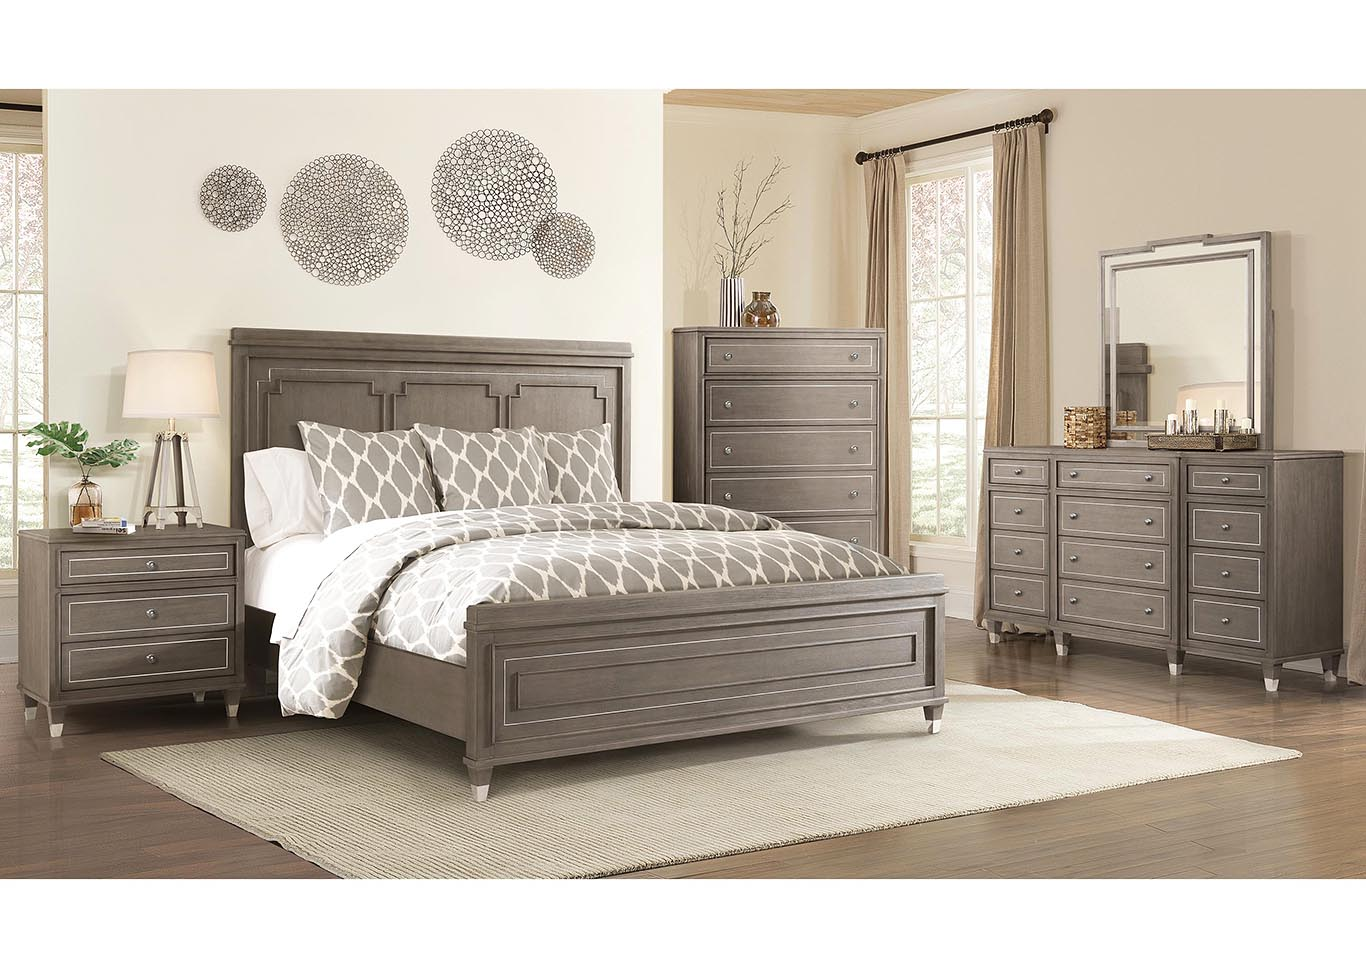 Penland\'s Furniture Dara Two Gray Wash Queen/Full Panel Bed ...